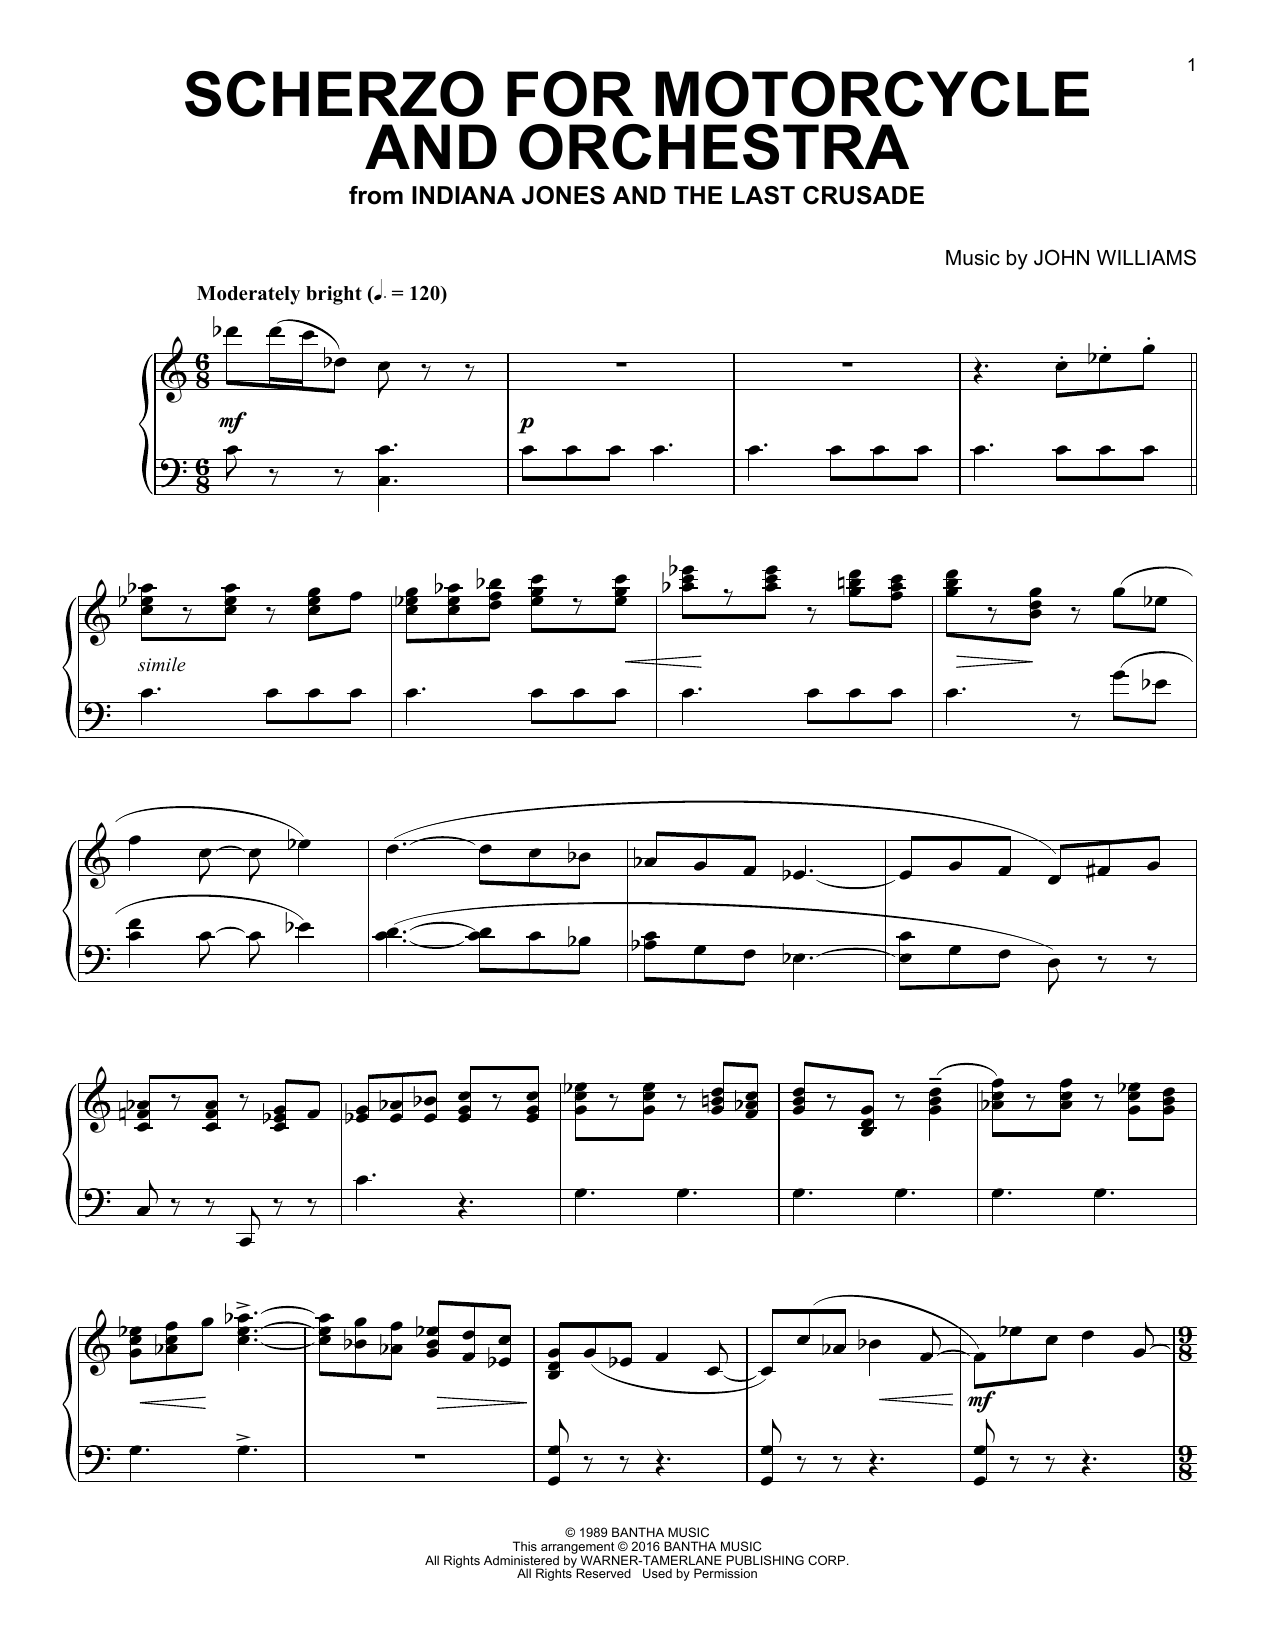 John Williams Scherzo For Motorcycle And Orchestra sheet music notes and chords. Download Printable PDF.